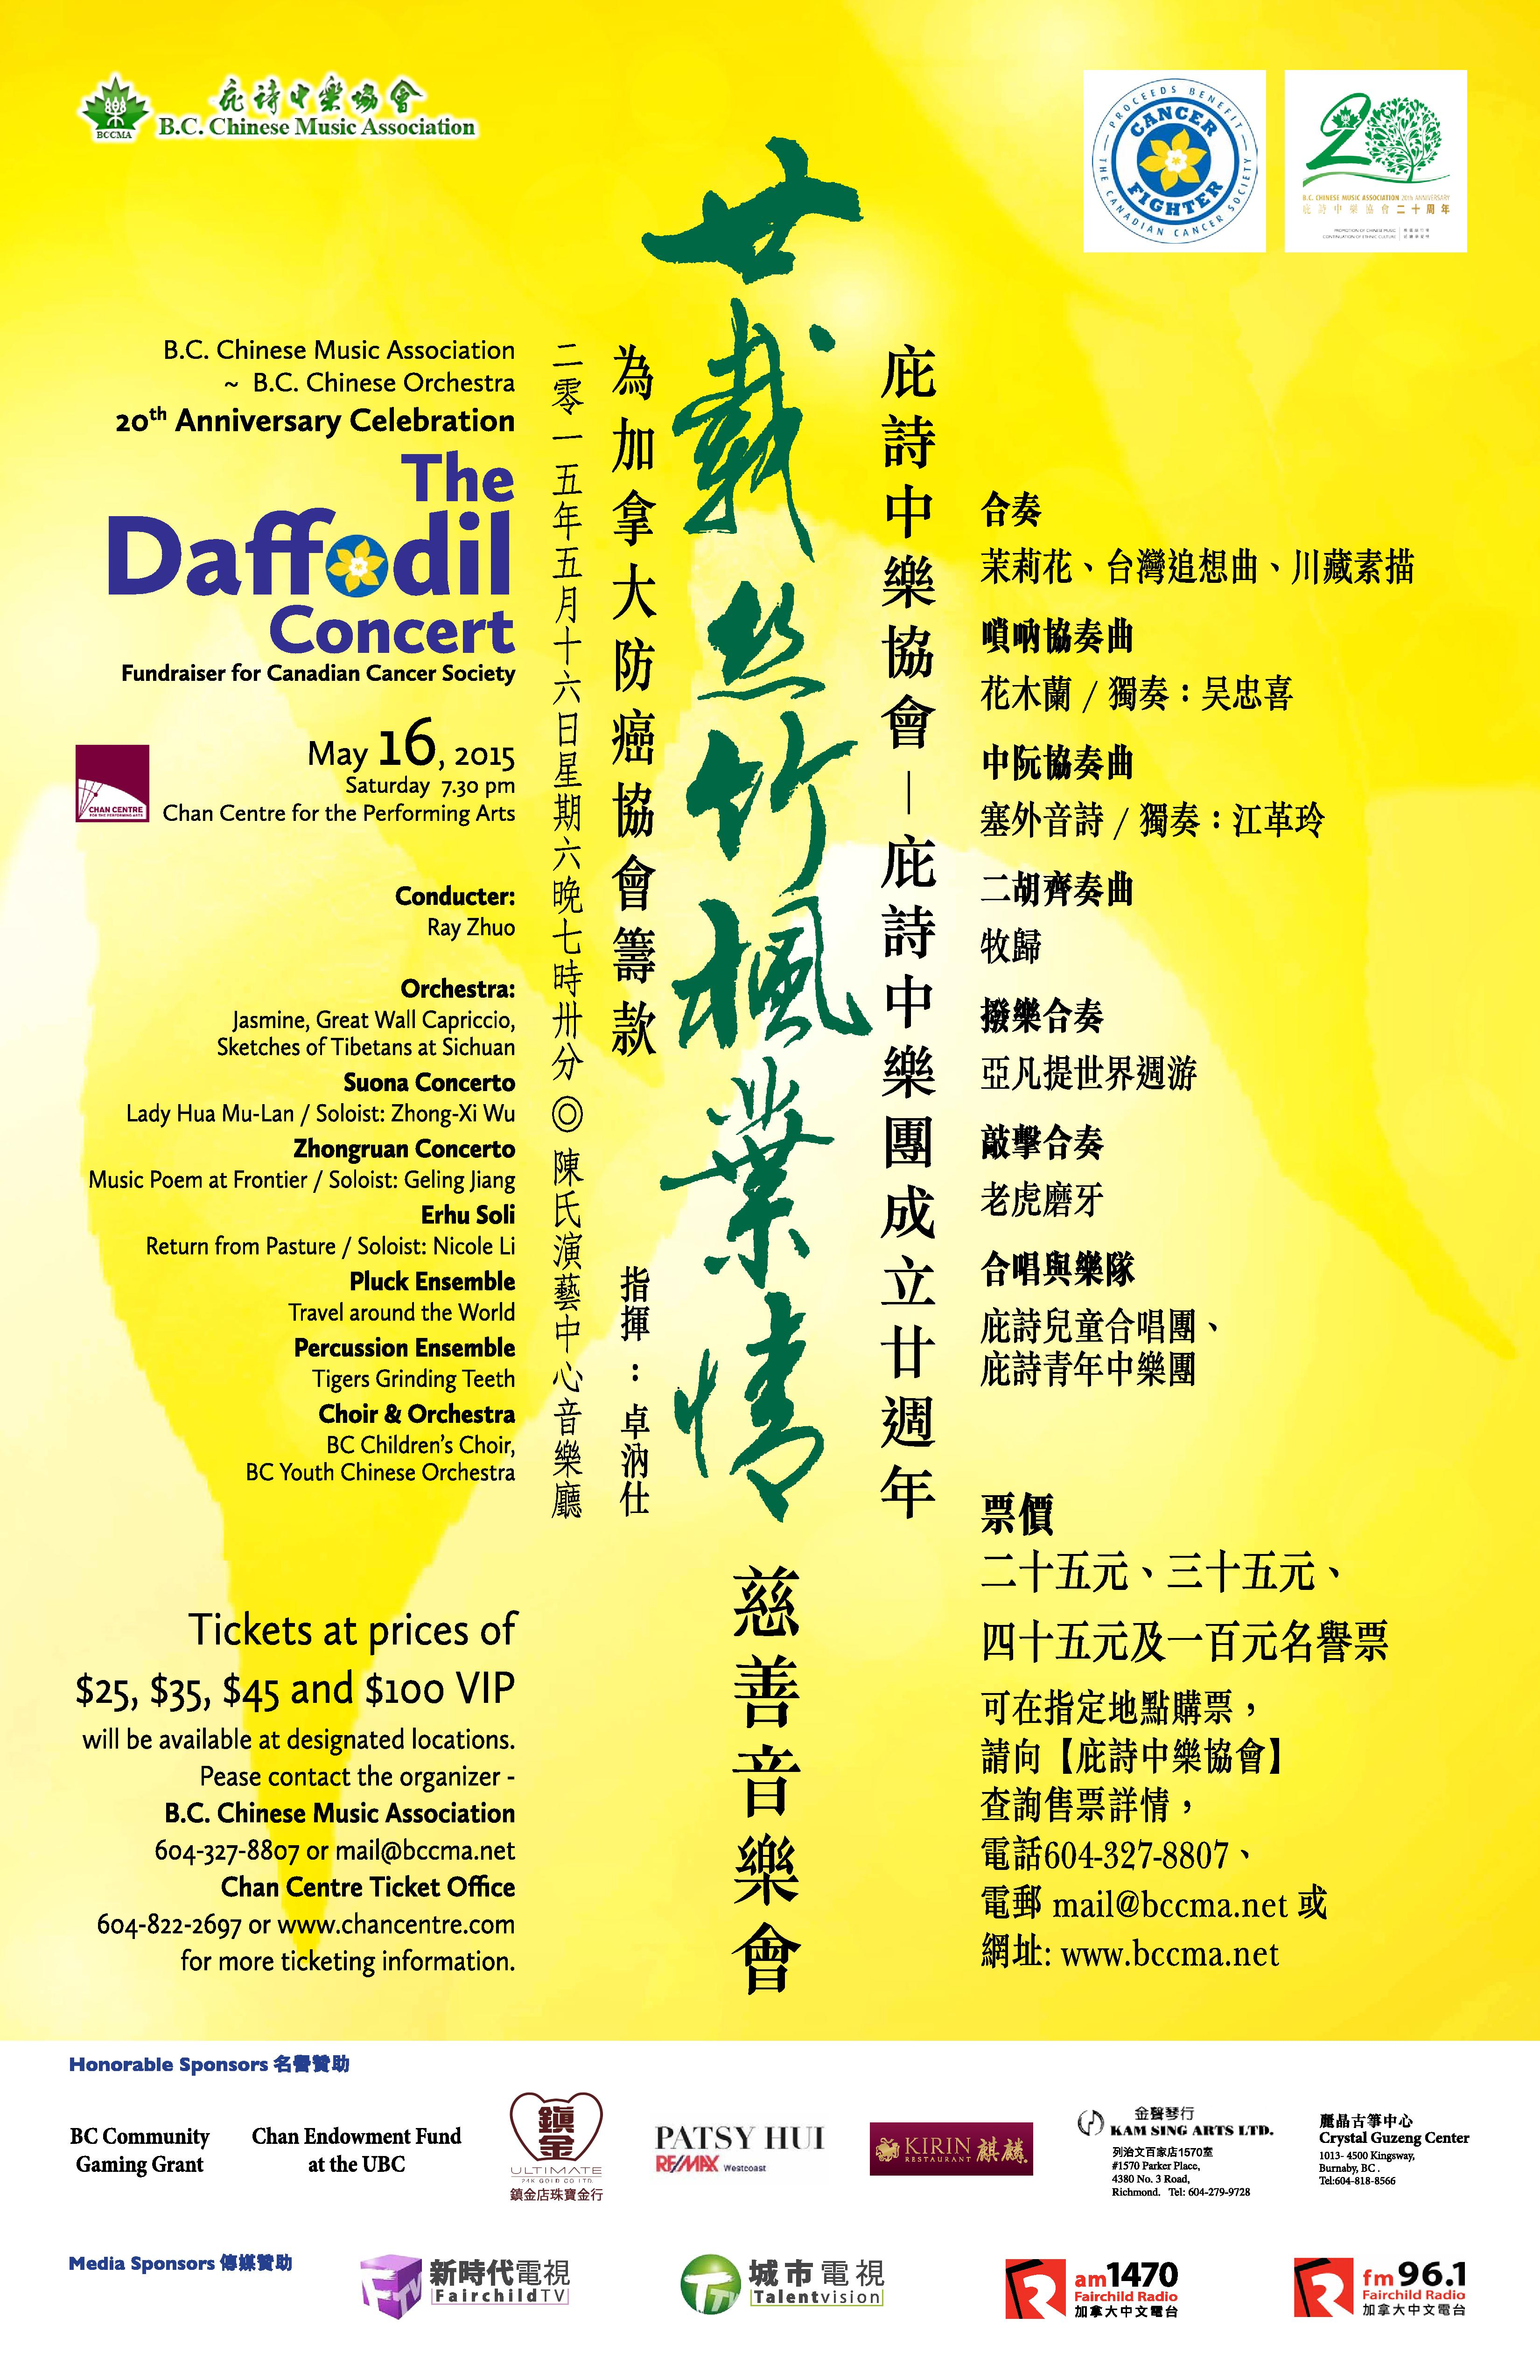 The Daffodil Concert